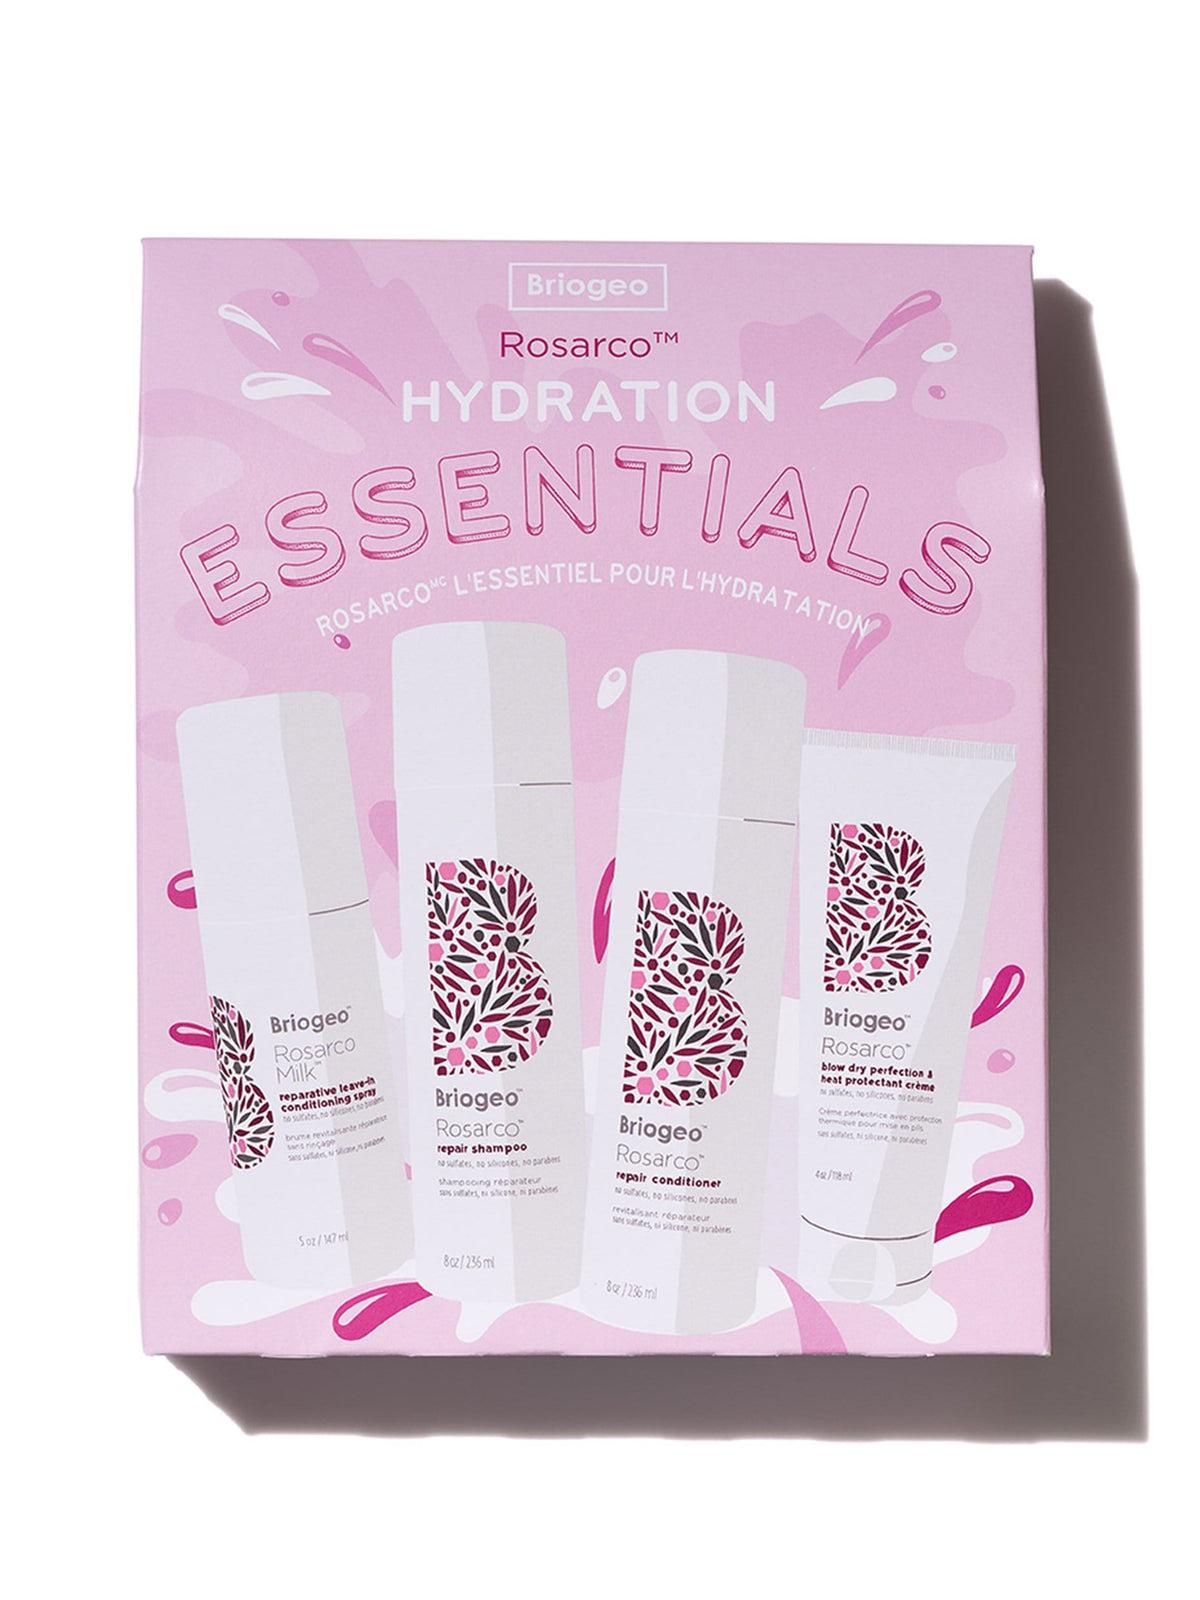 Rosarco™ Hydration All The Way Essentials Kit